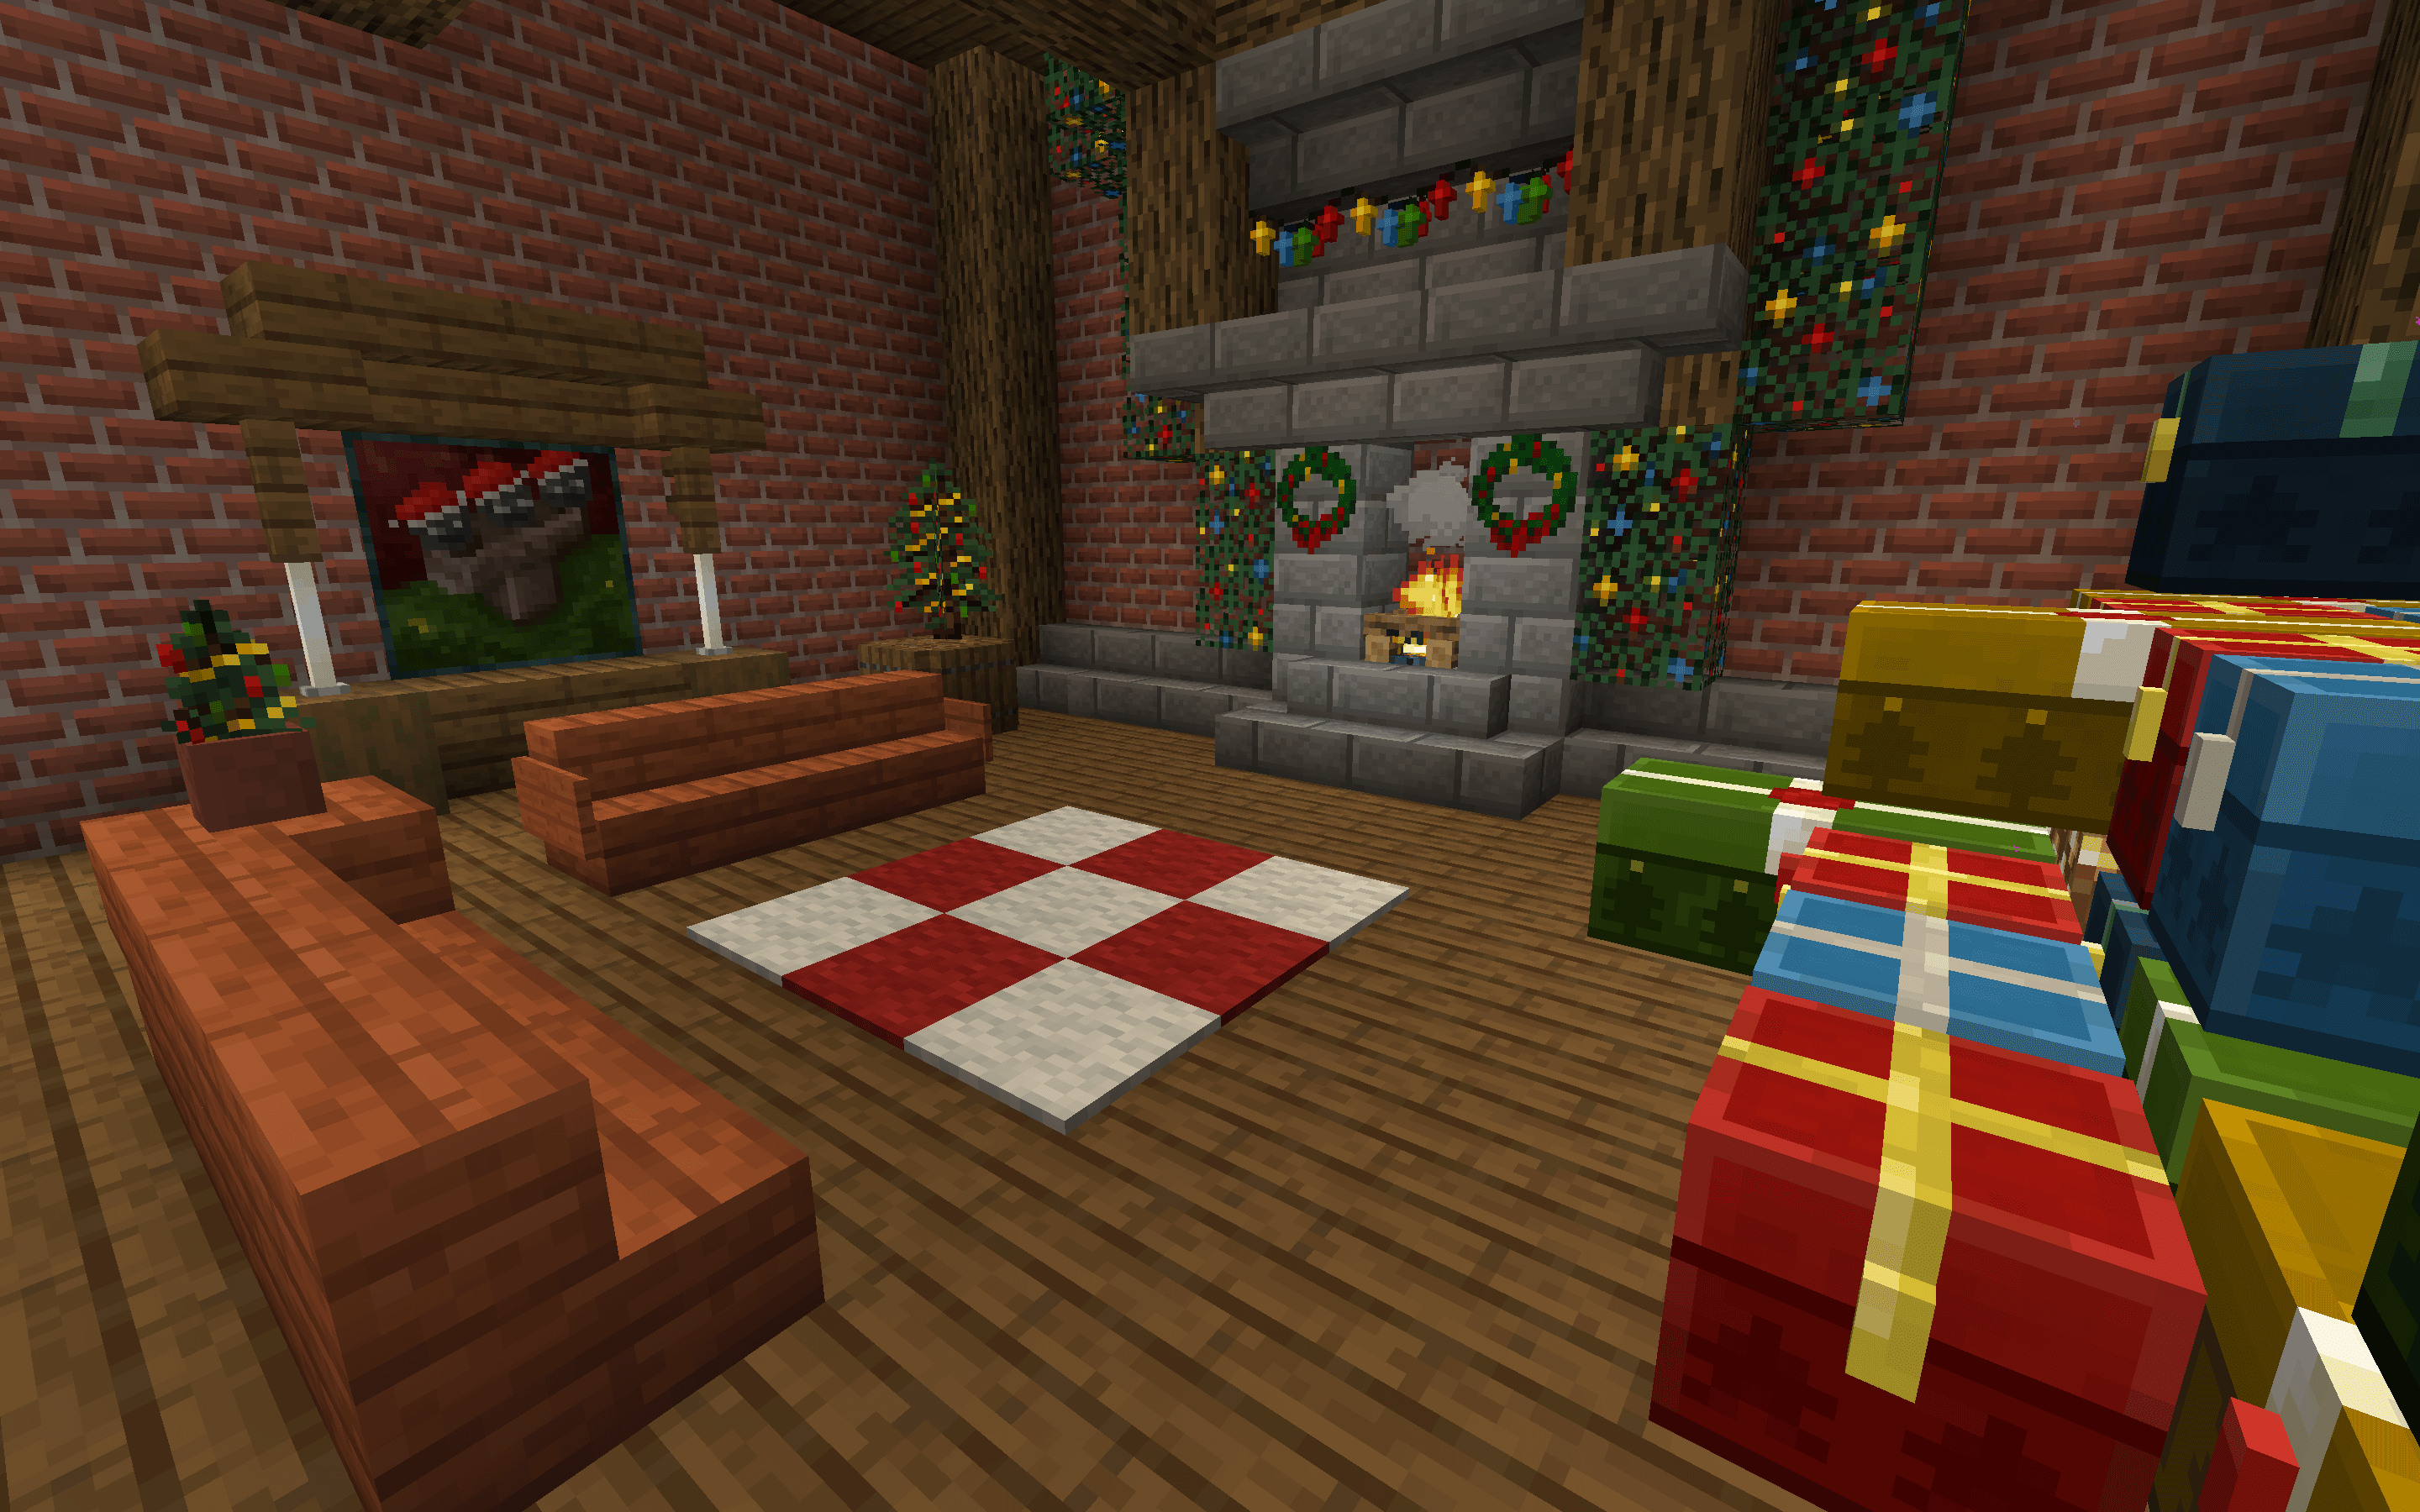 New Default-Style Christmas Pack скриншот 2